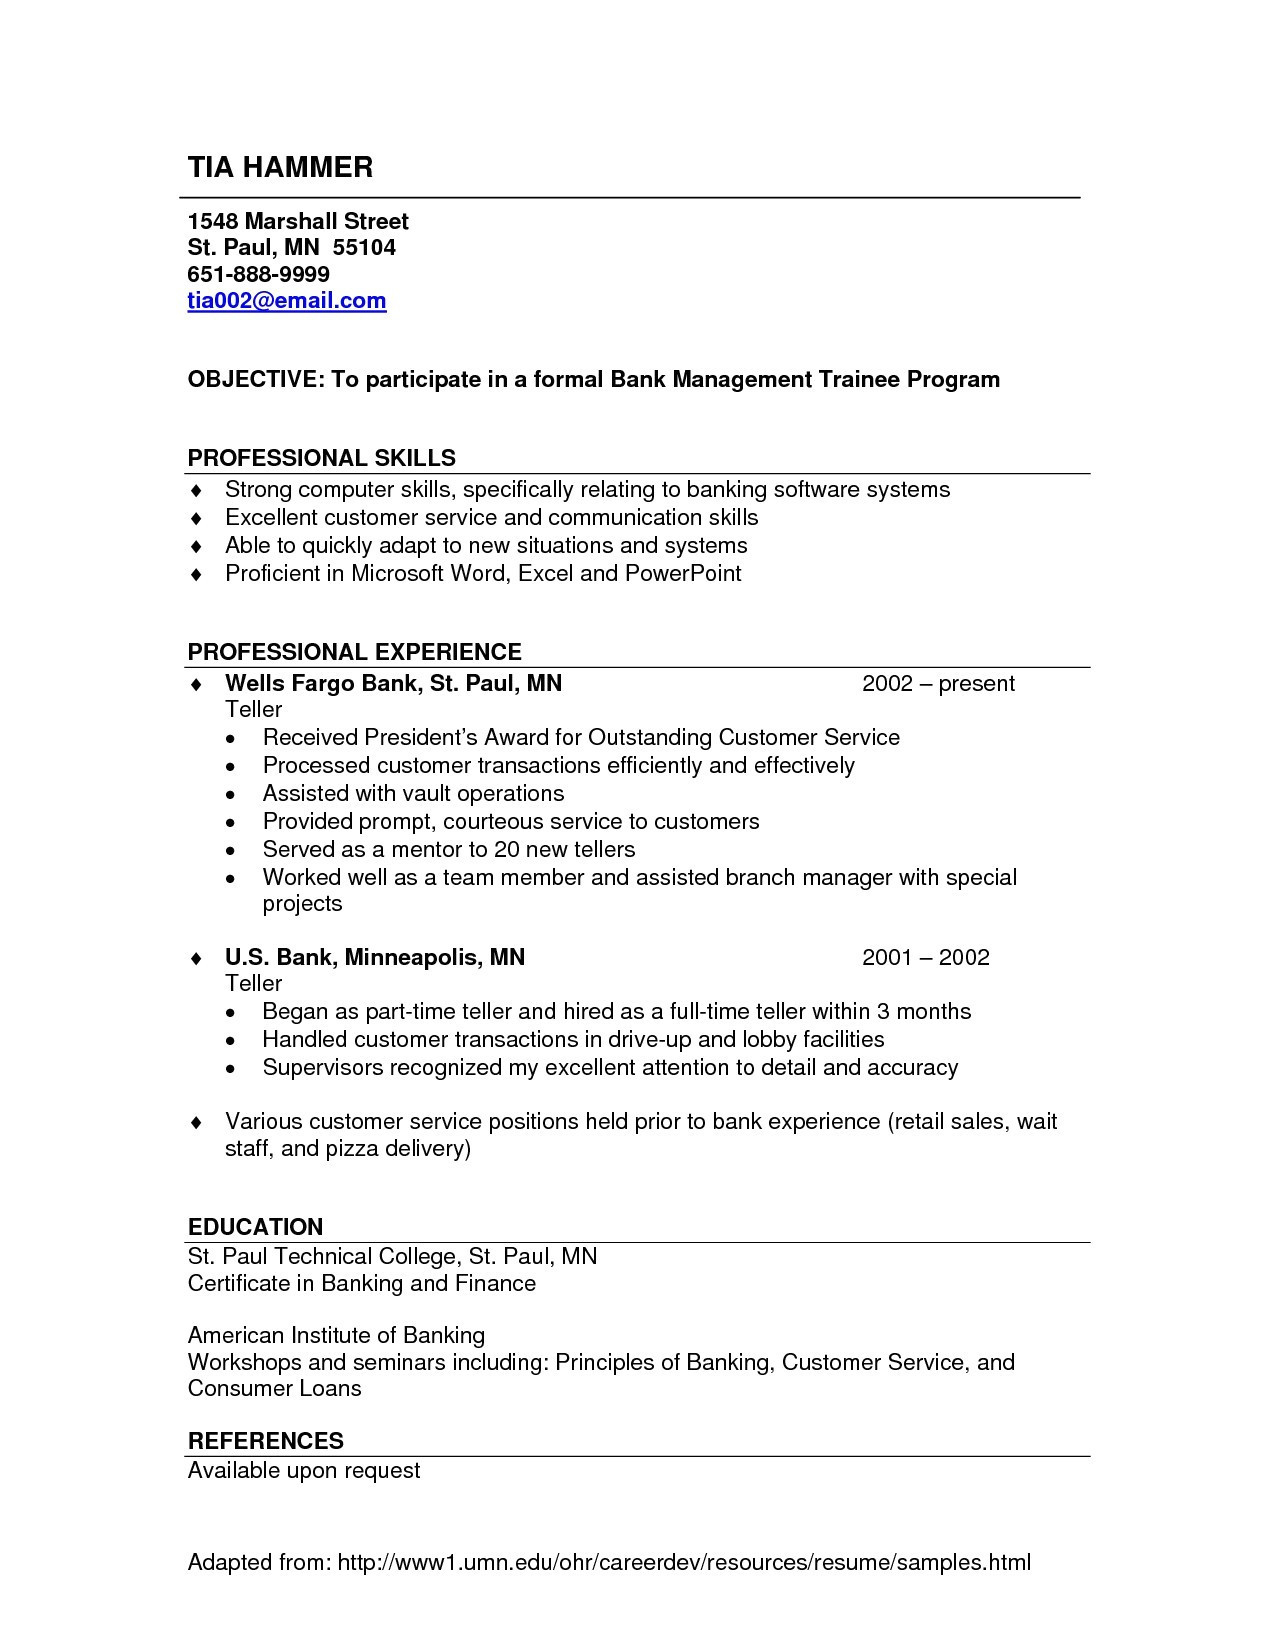 resume format for experienced example-Apa Resume Template New Examples A Resume Fresh Resume Examples 0d Skills Examples For 2-n